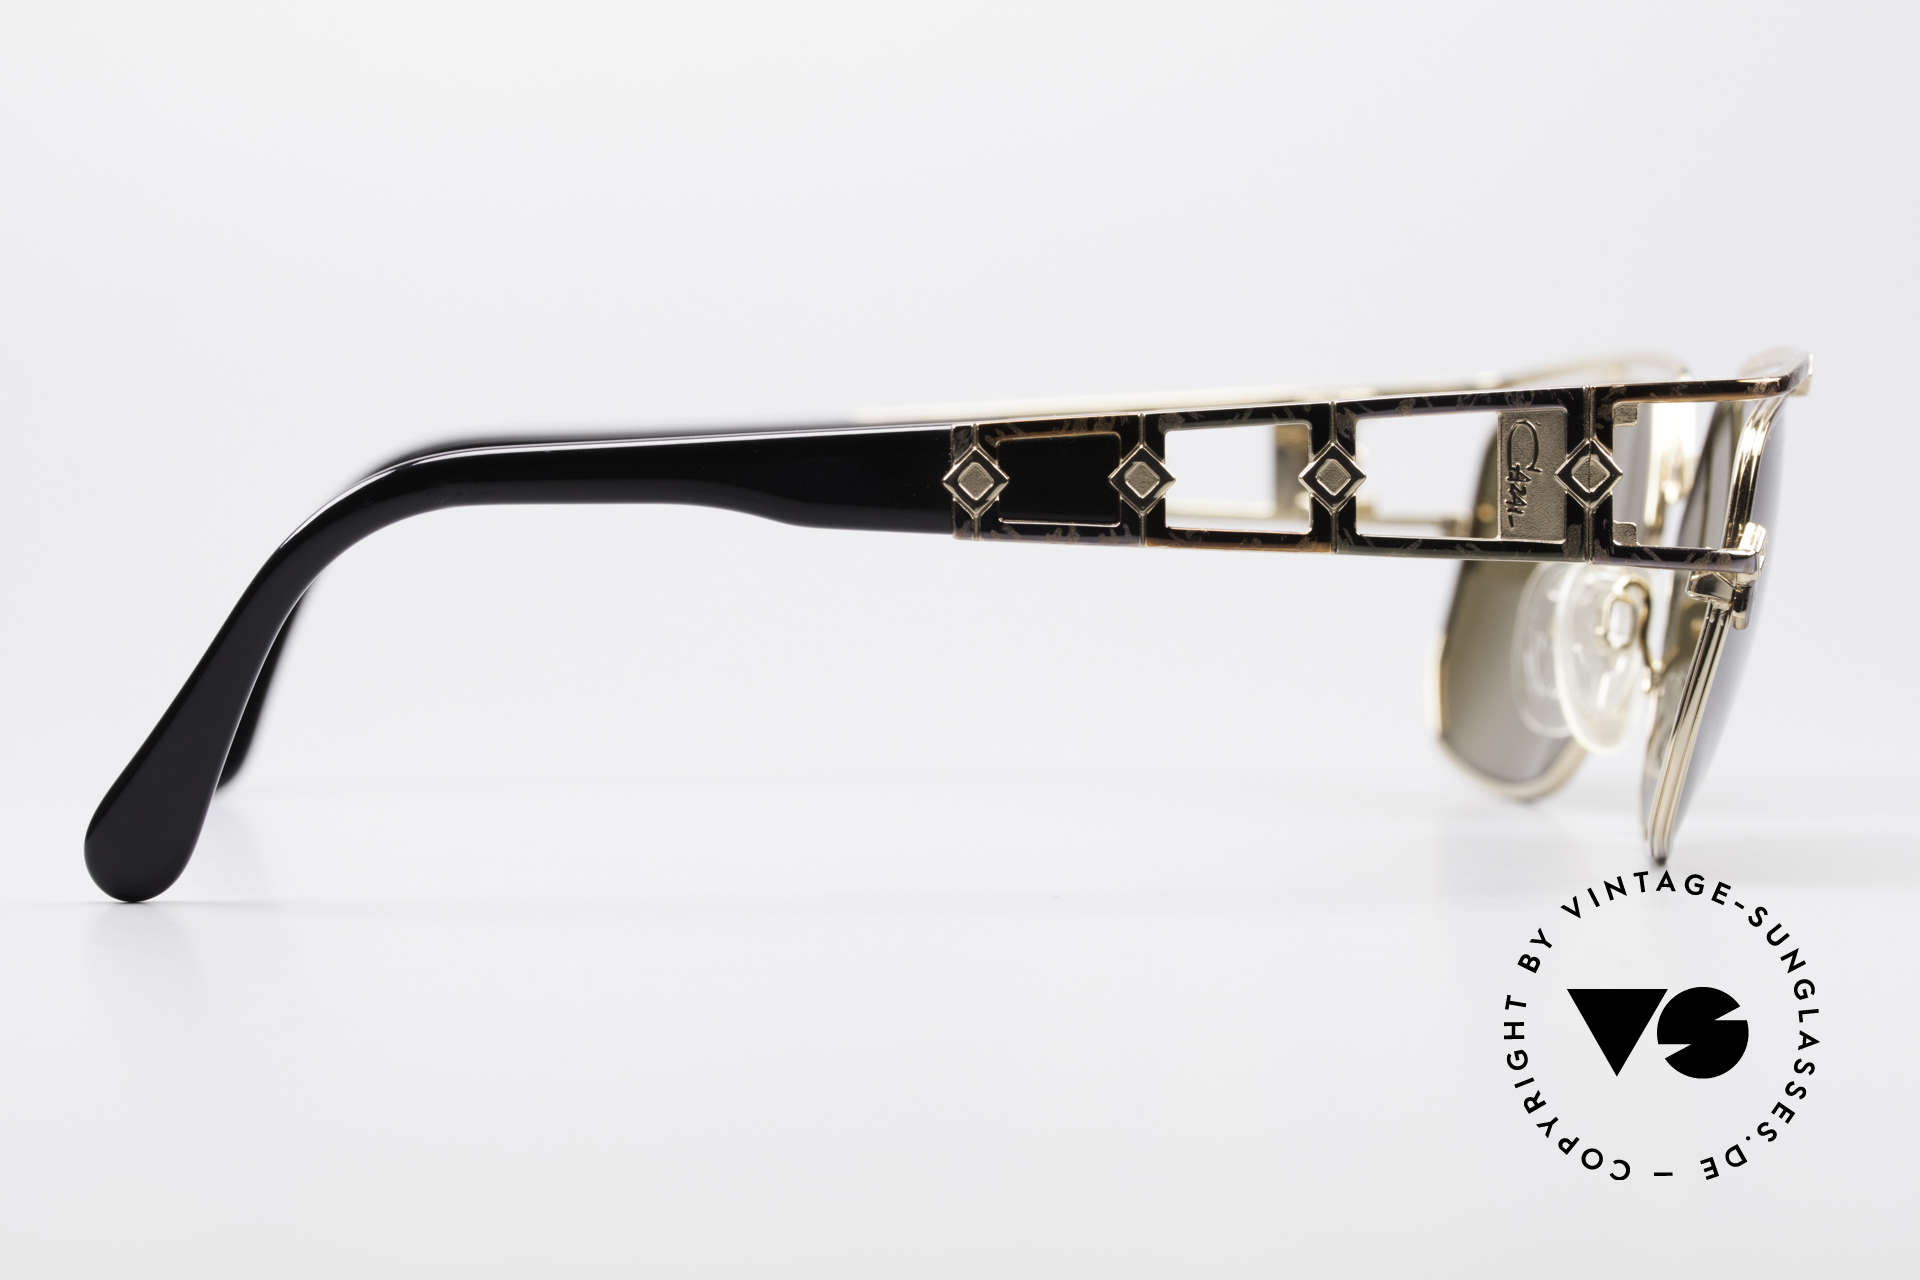 Cazal 979 Ladies Sunglasses Vintage, NO RETRO glasses, but an authentic old original!, Made for Women